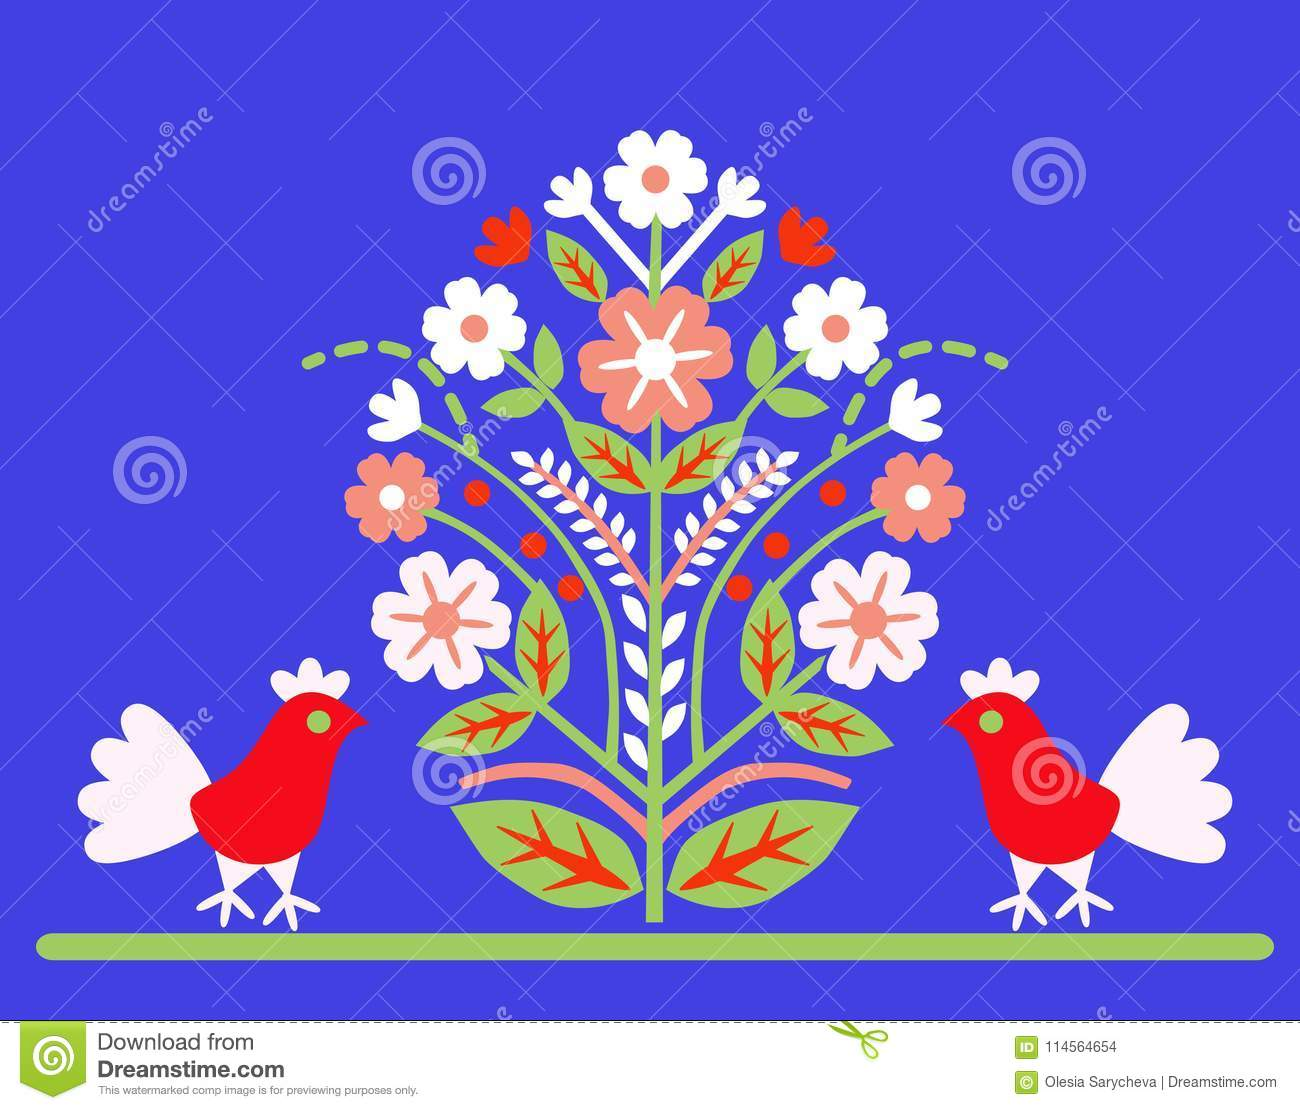 Ornament `Tree of Life` with two birds on a blue background.